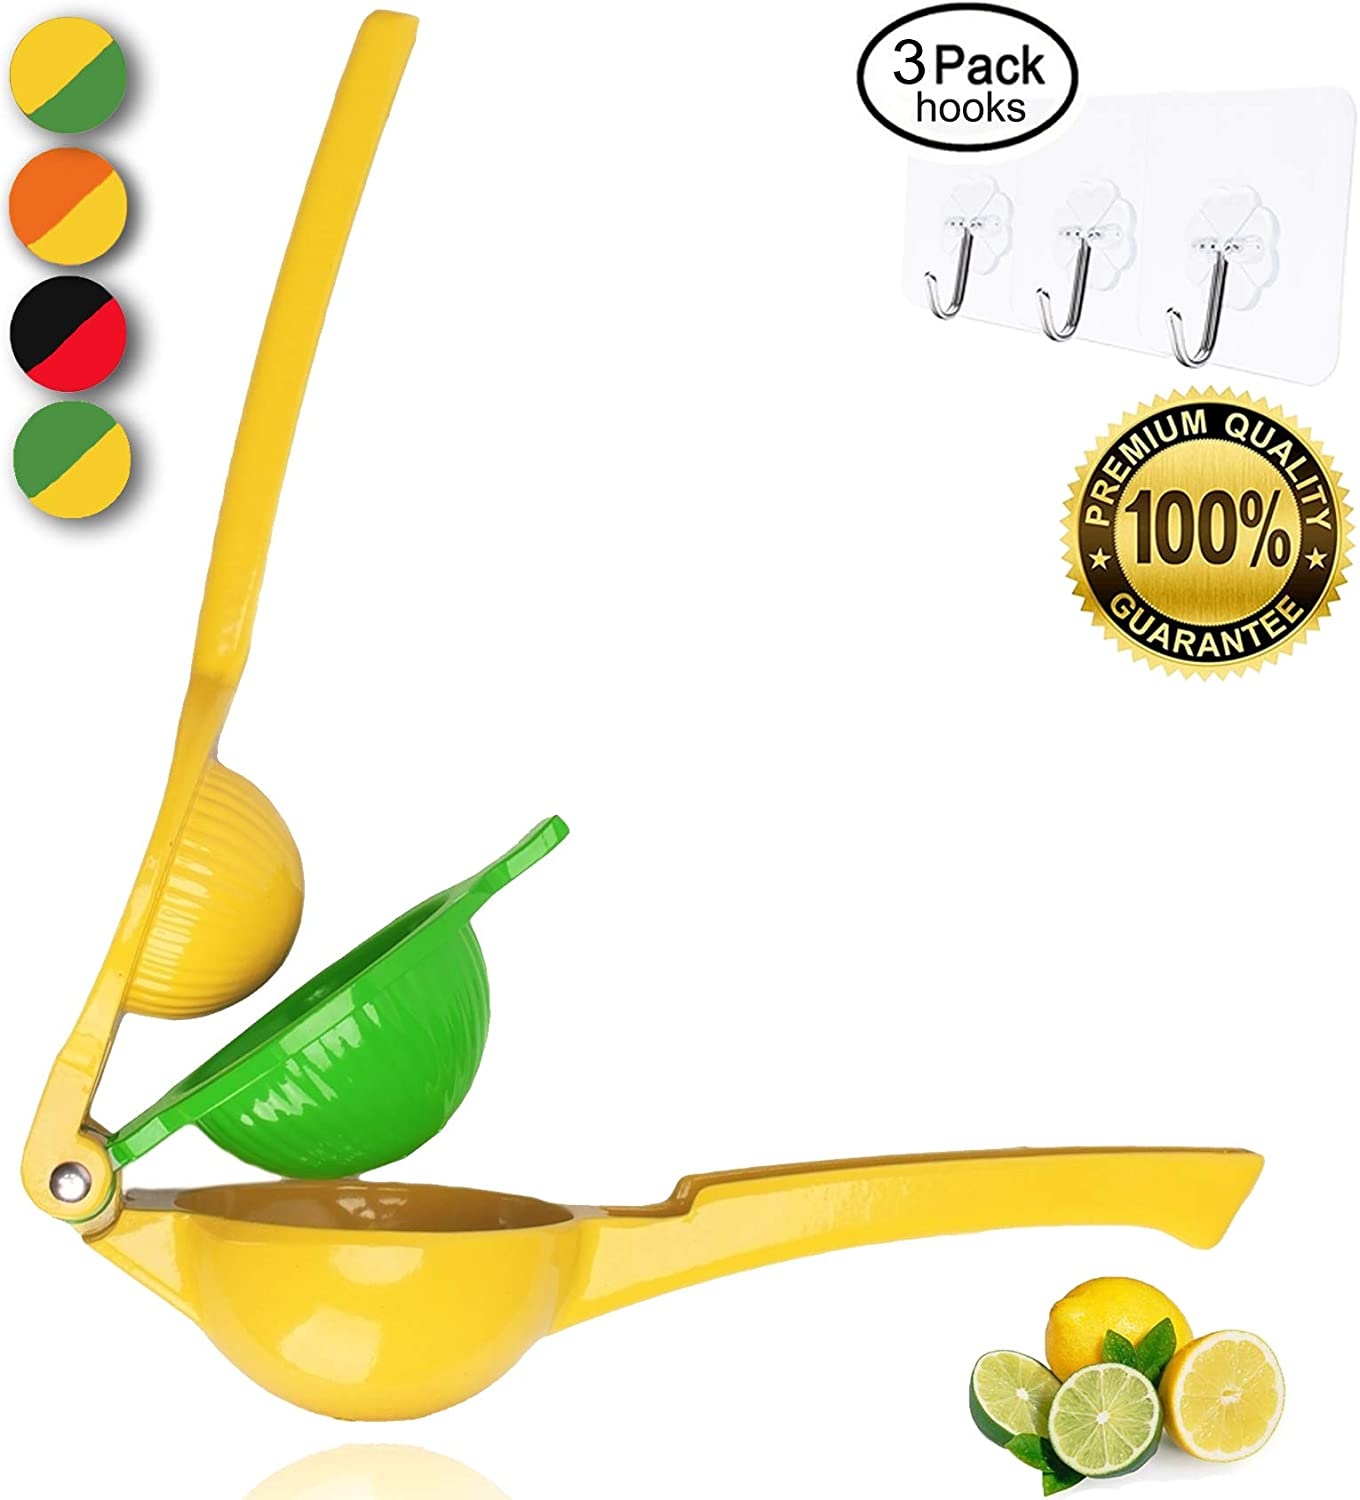 Yimobra Manual Lemon Squeezer,Hand Citrus Lime Juicer Press Premium Quality Professional Kitchen Tool Black (Presented Wall Hooks 3 Pack) MJC01B